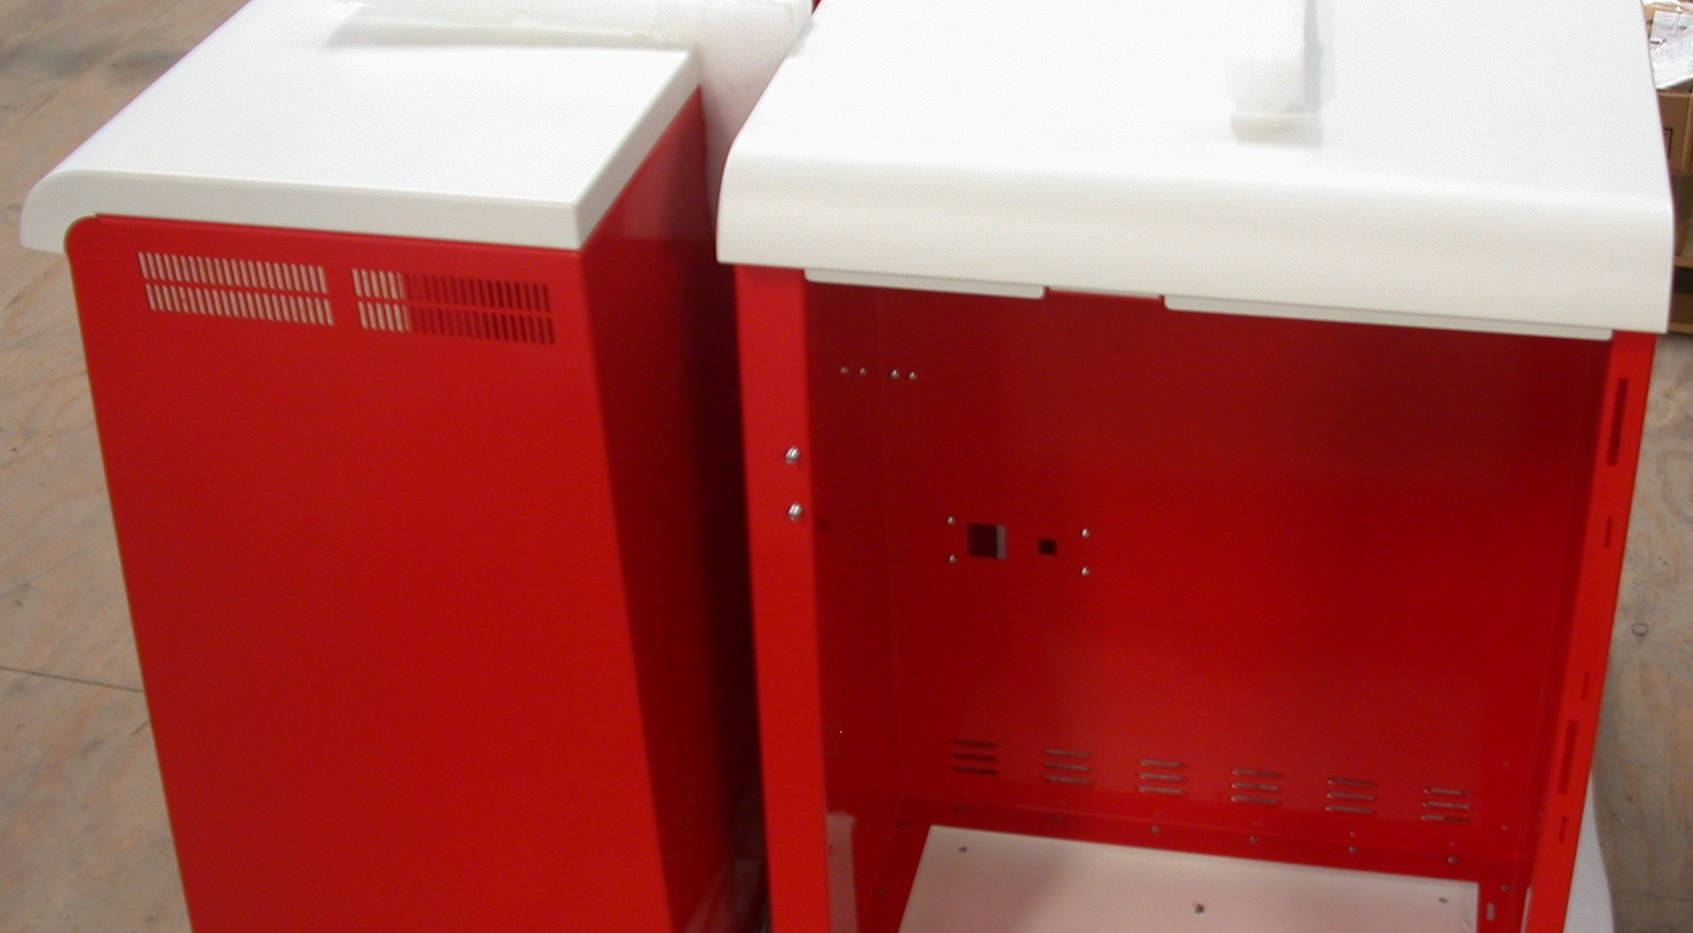 Powder Coated Managed by Interfab for Sheet Metal Enclosures